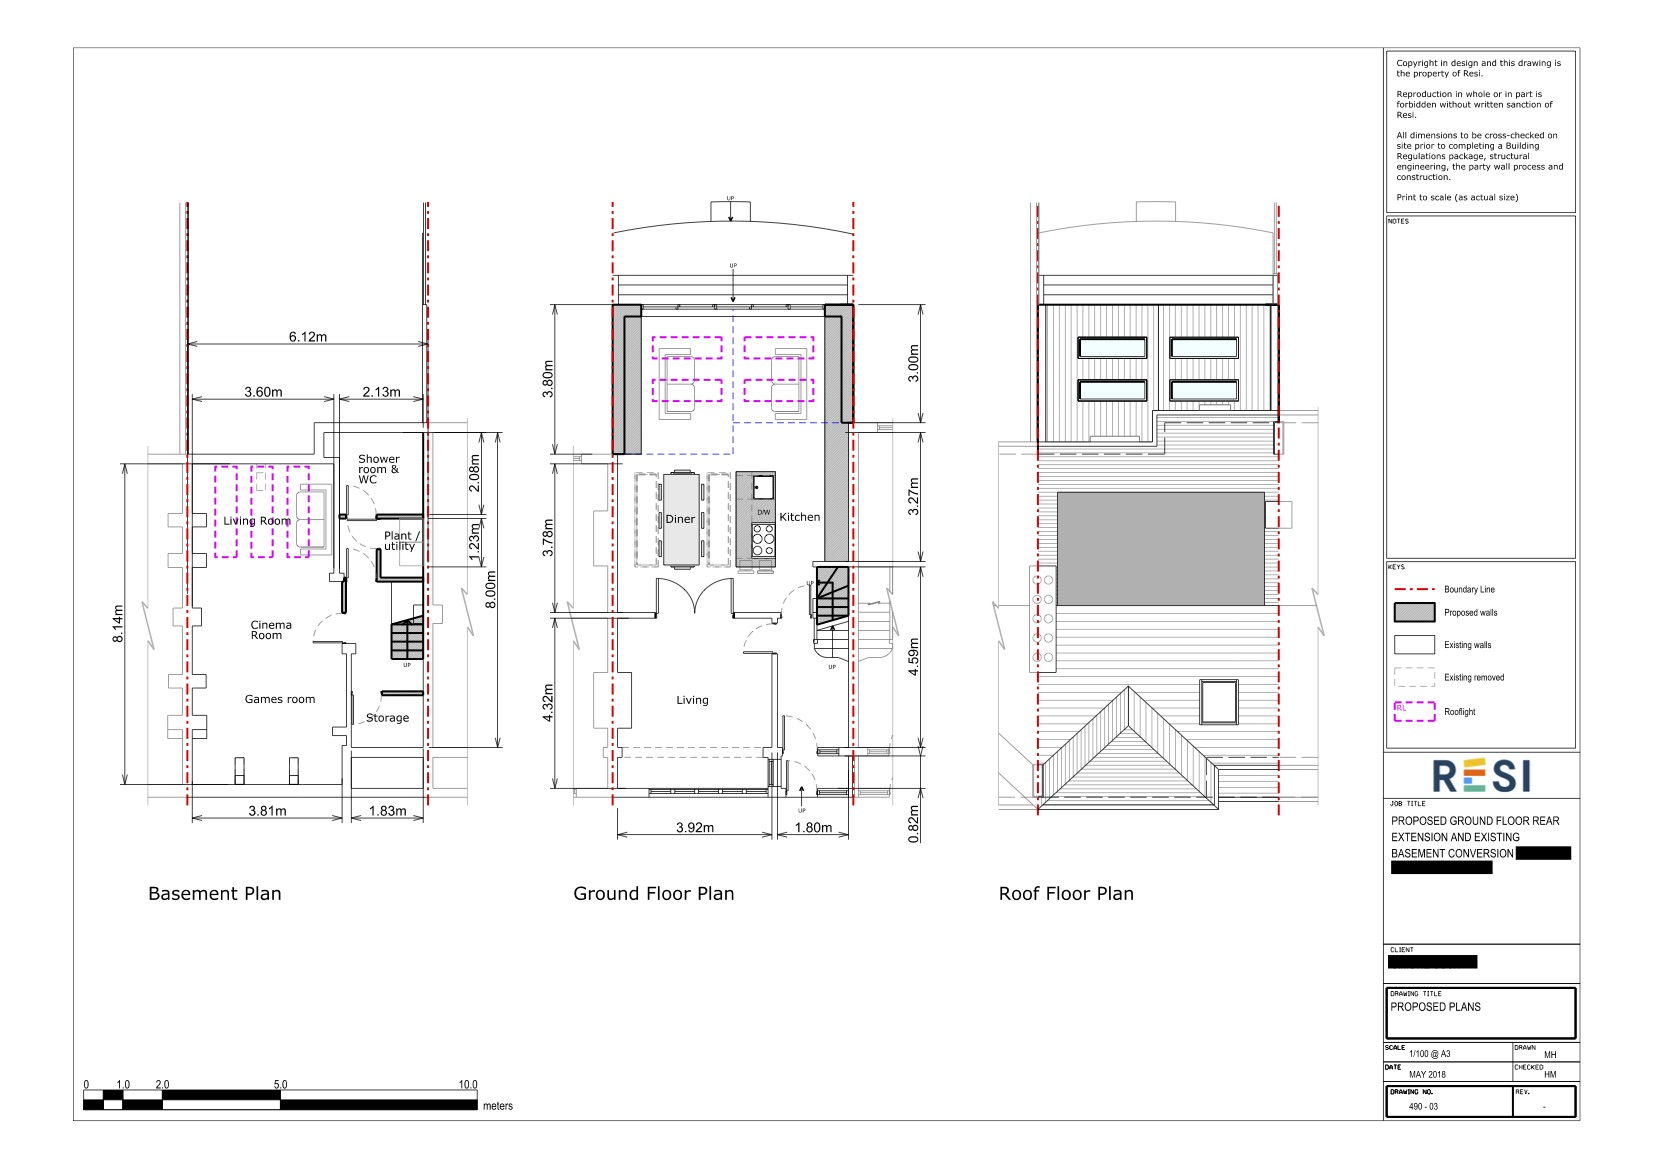 Architectural drawings 24   gf and basement floor plans